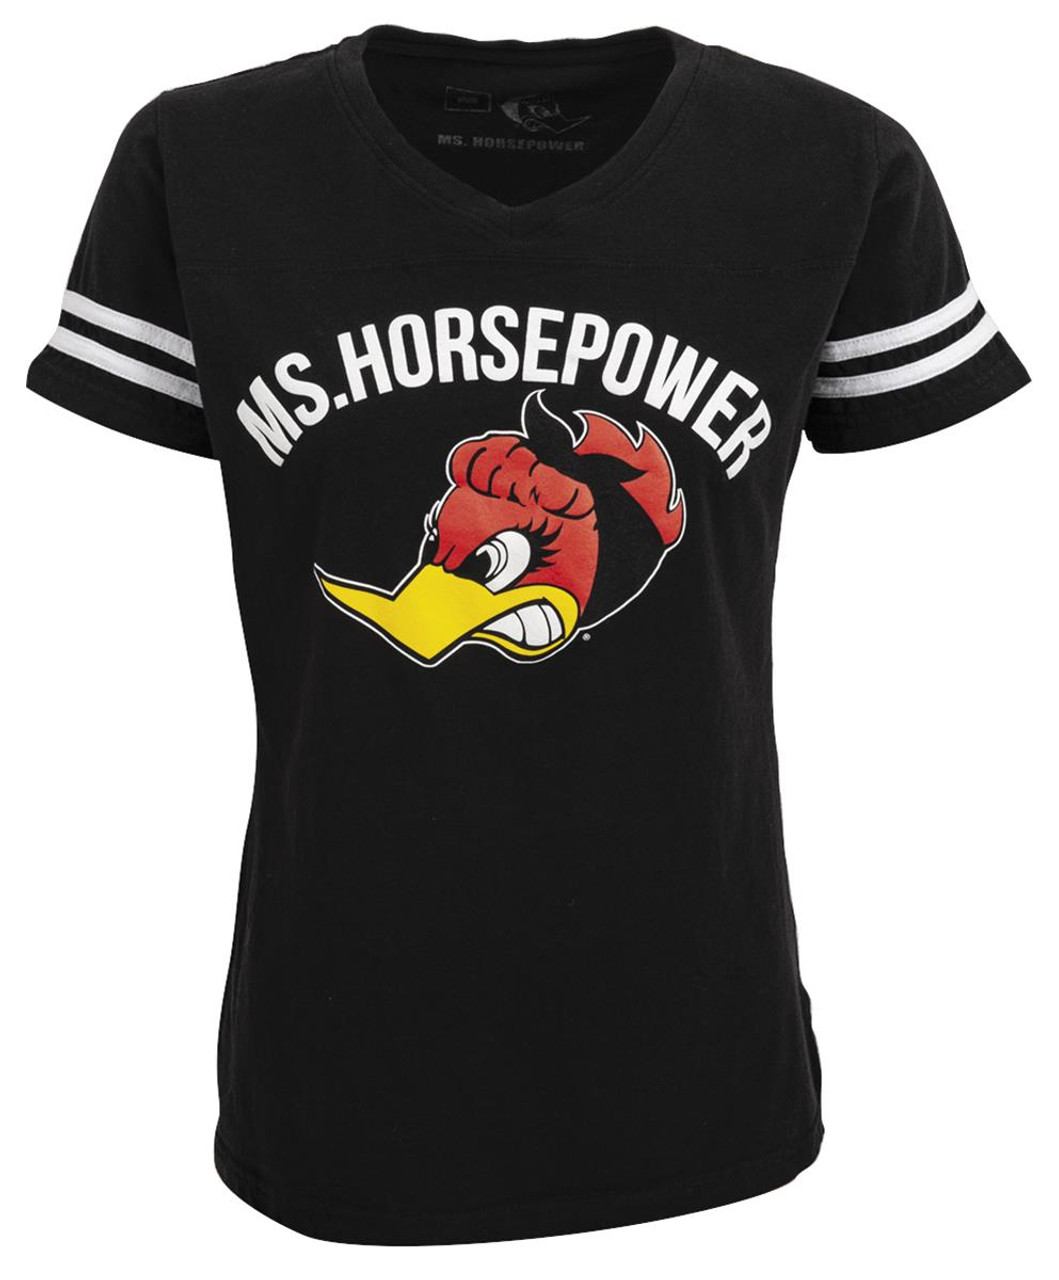 Ladies Ms. Horsepower - Game or Race Day Black T-Shirt